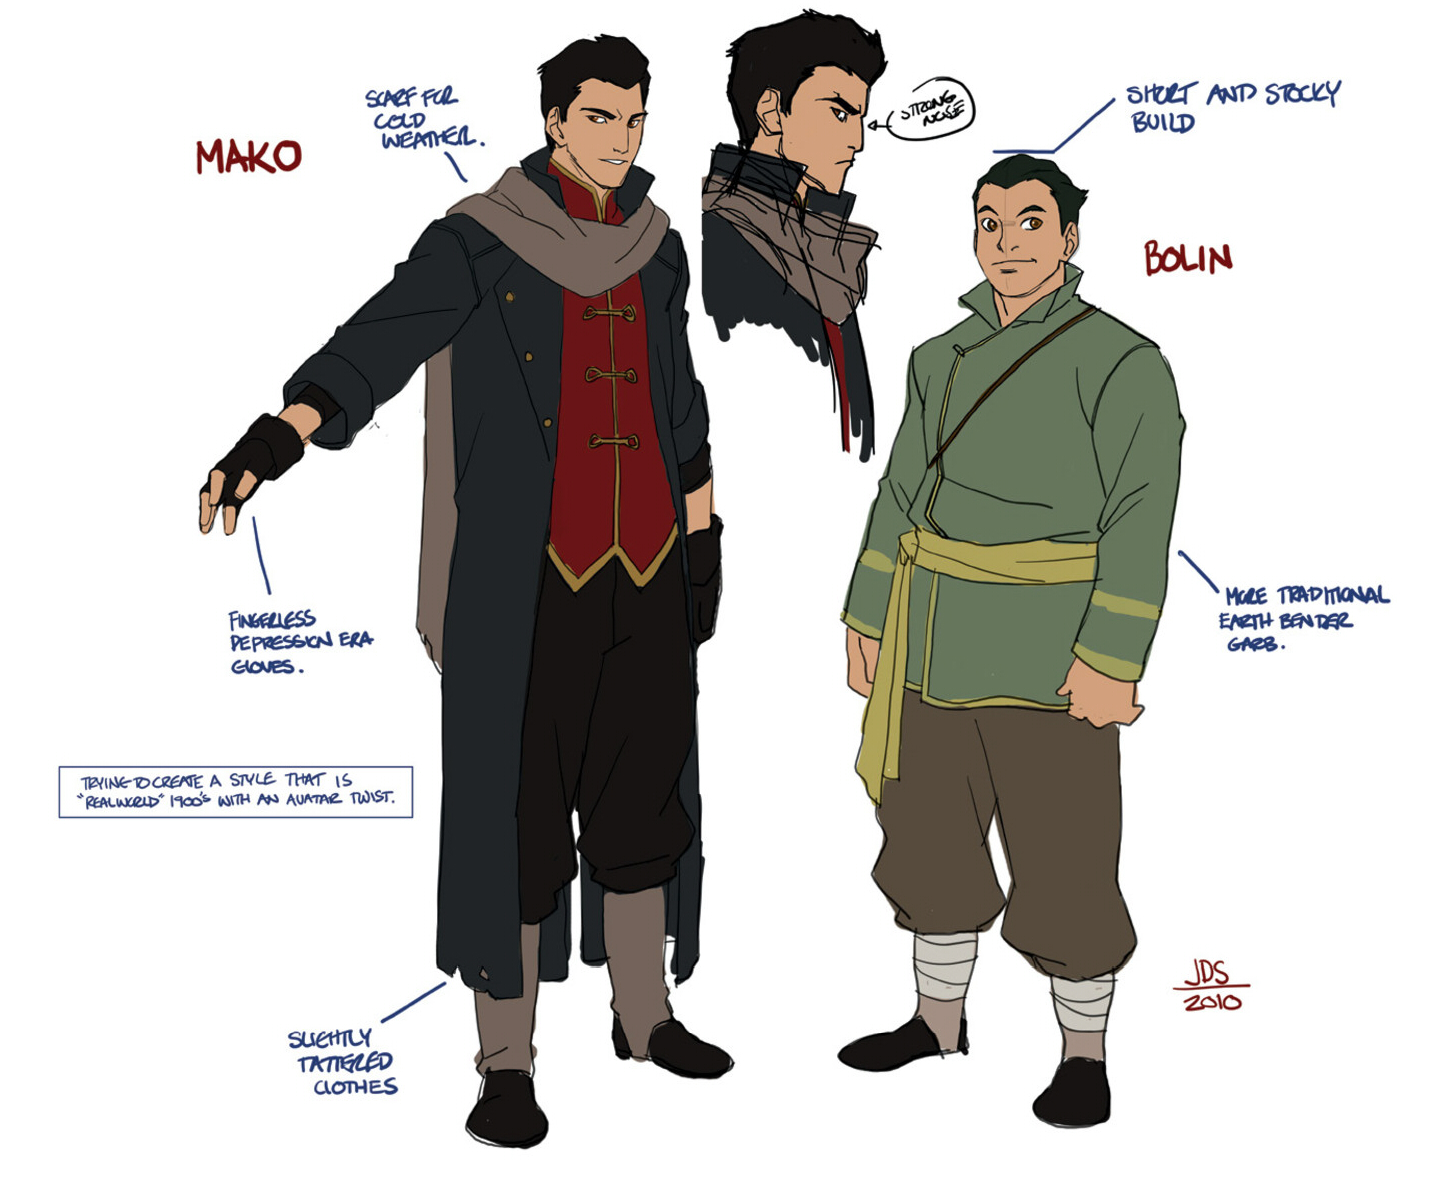 avatar character sheet avatar: the legend of korra image # - zerochan anime